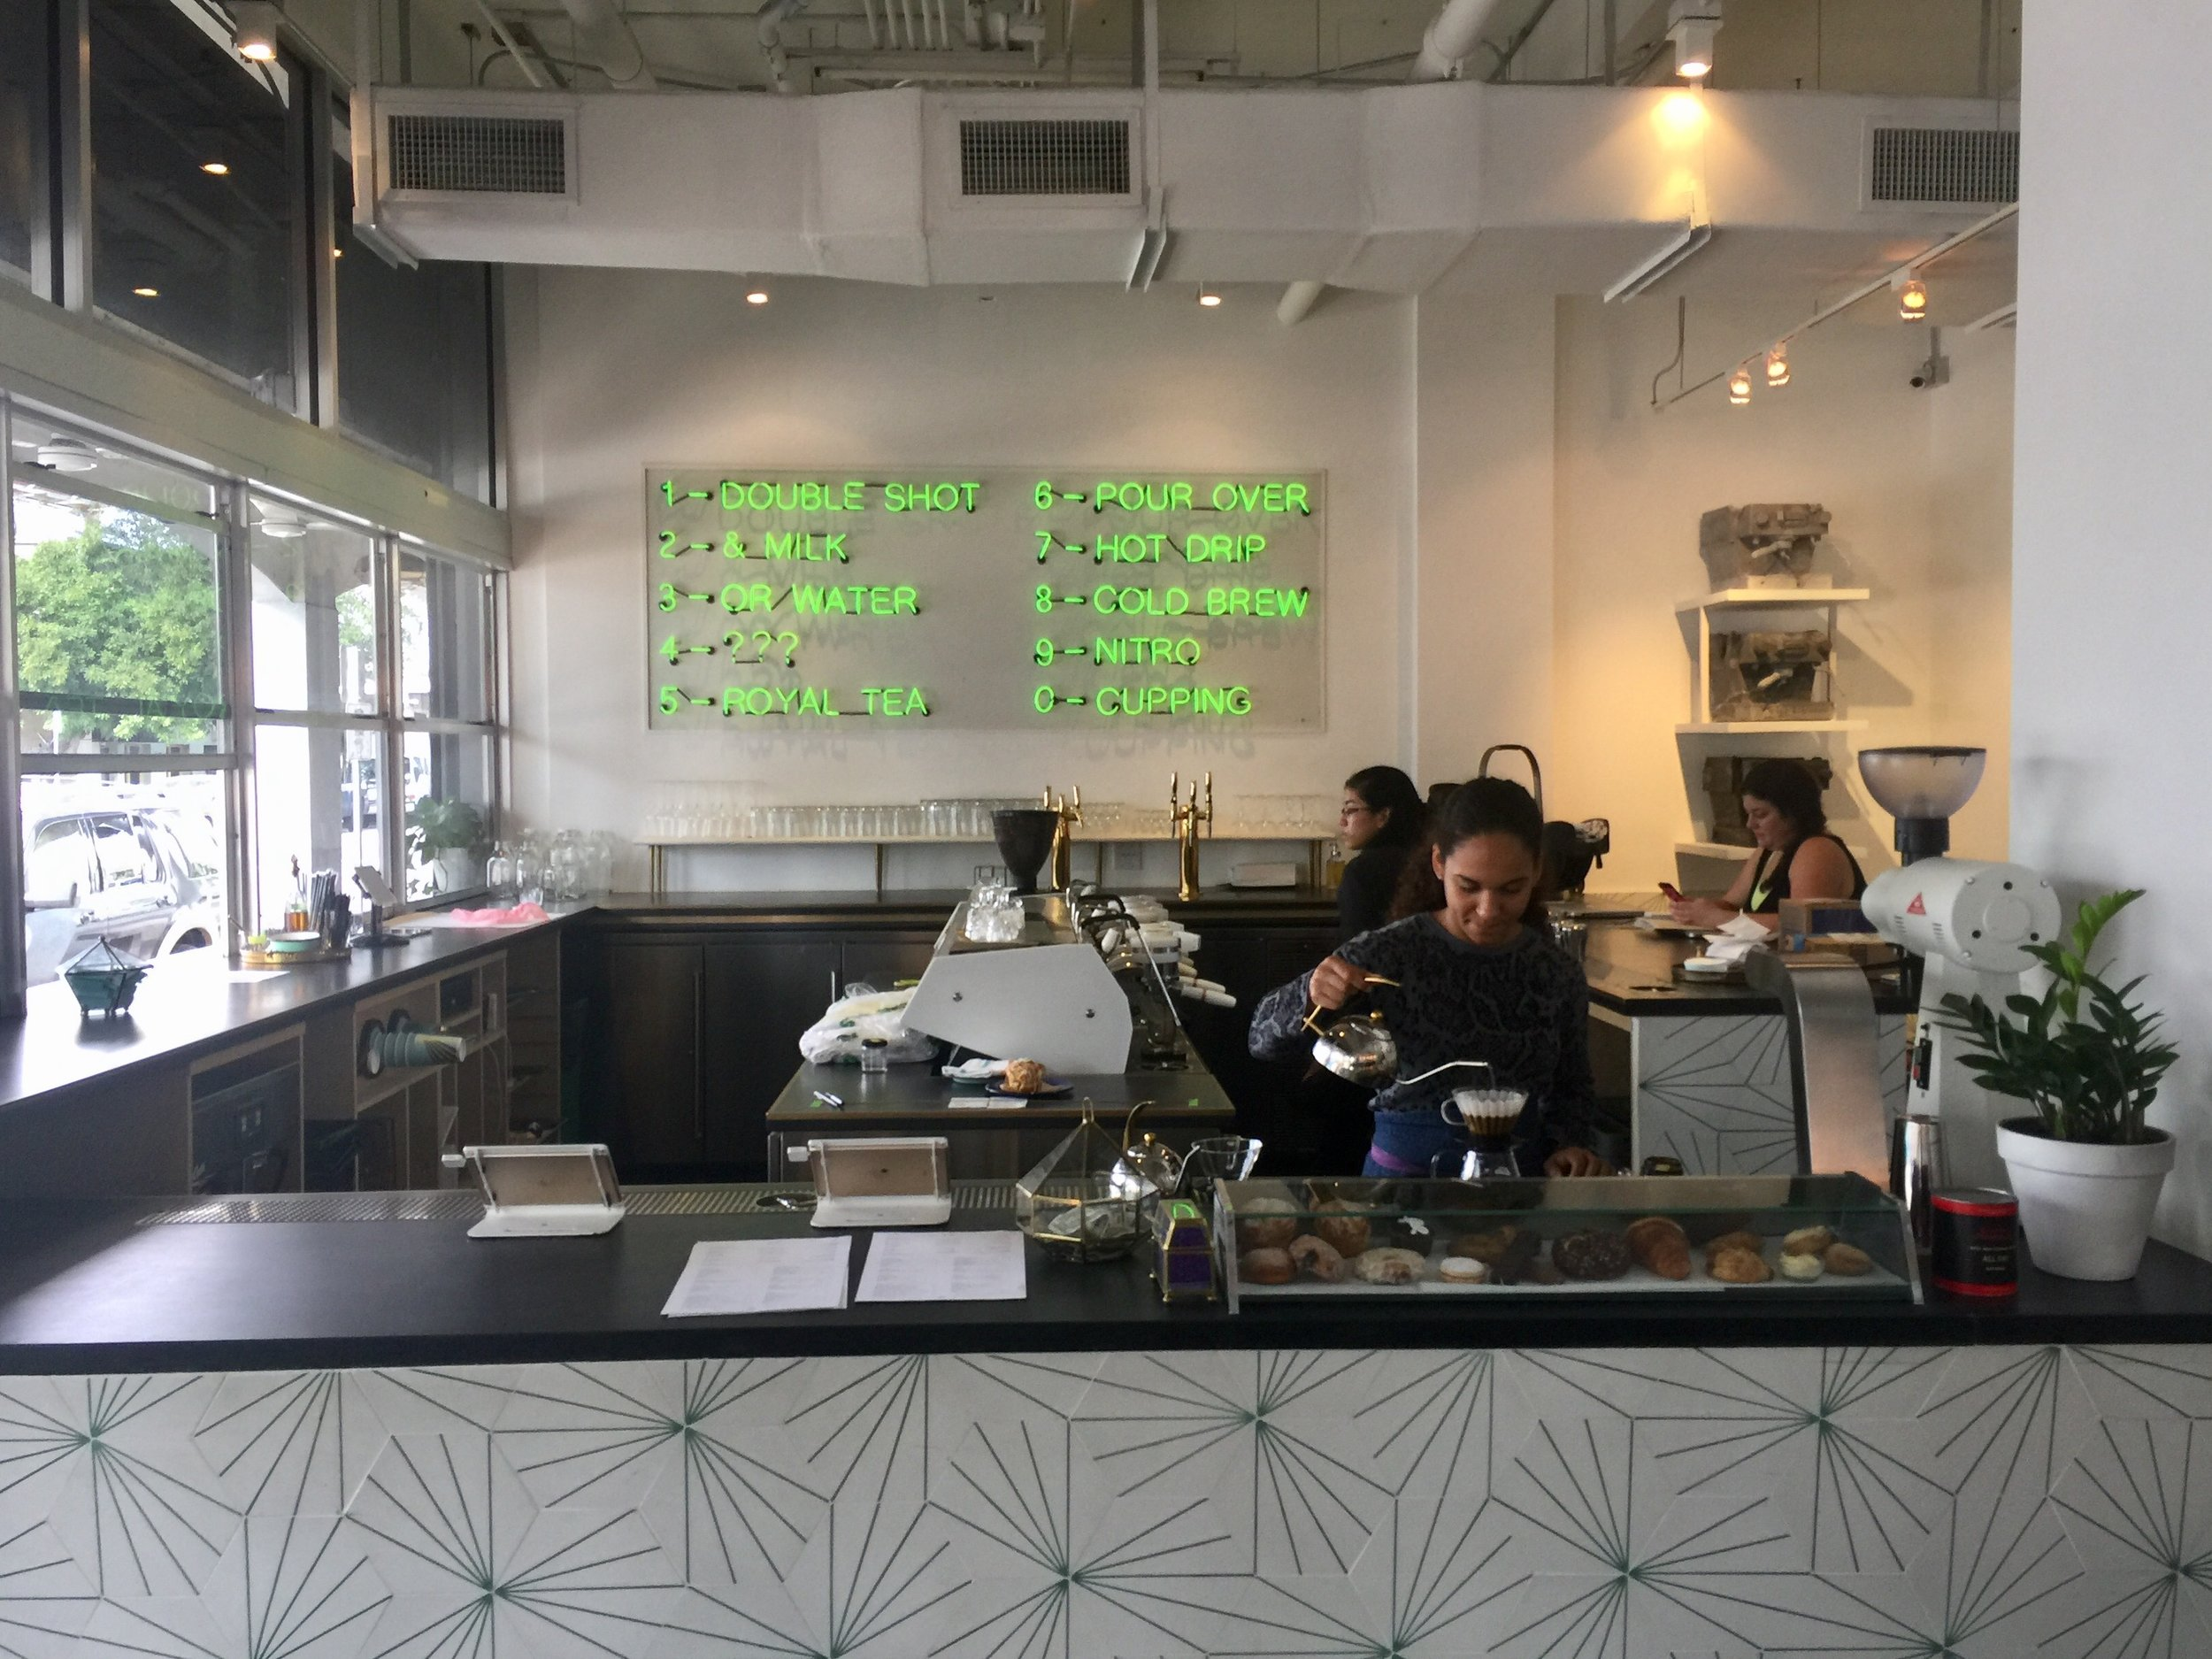 All Day's neon green menu has become a focal point of Miami's burgeoning coffee scene.